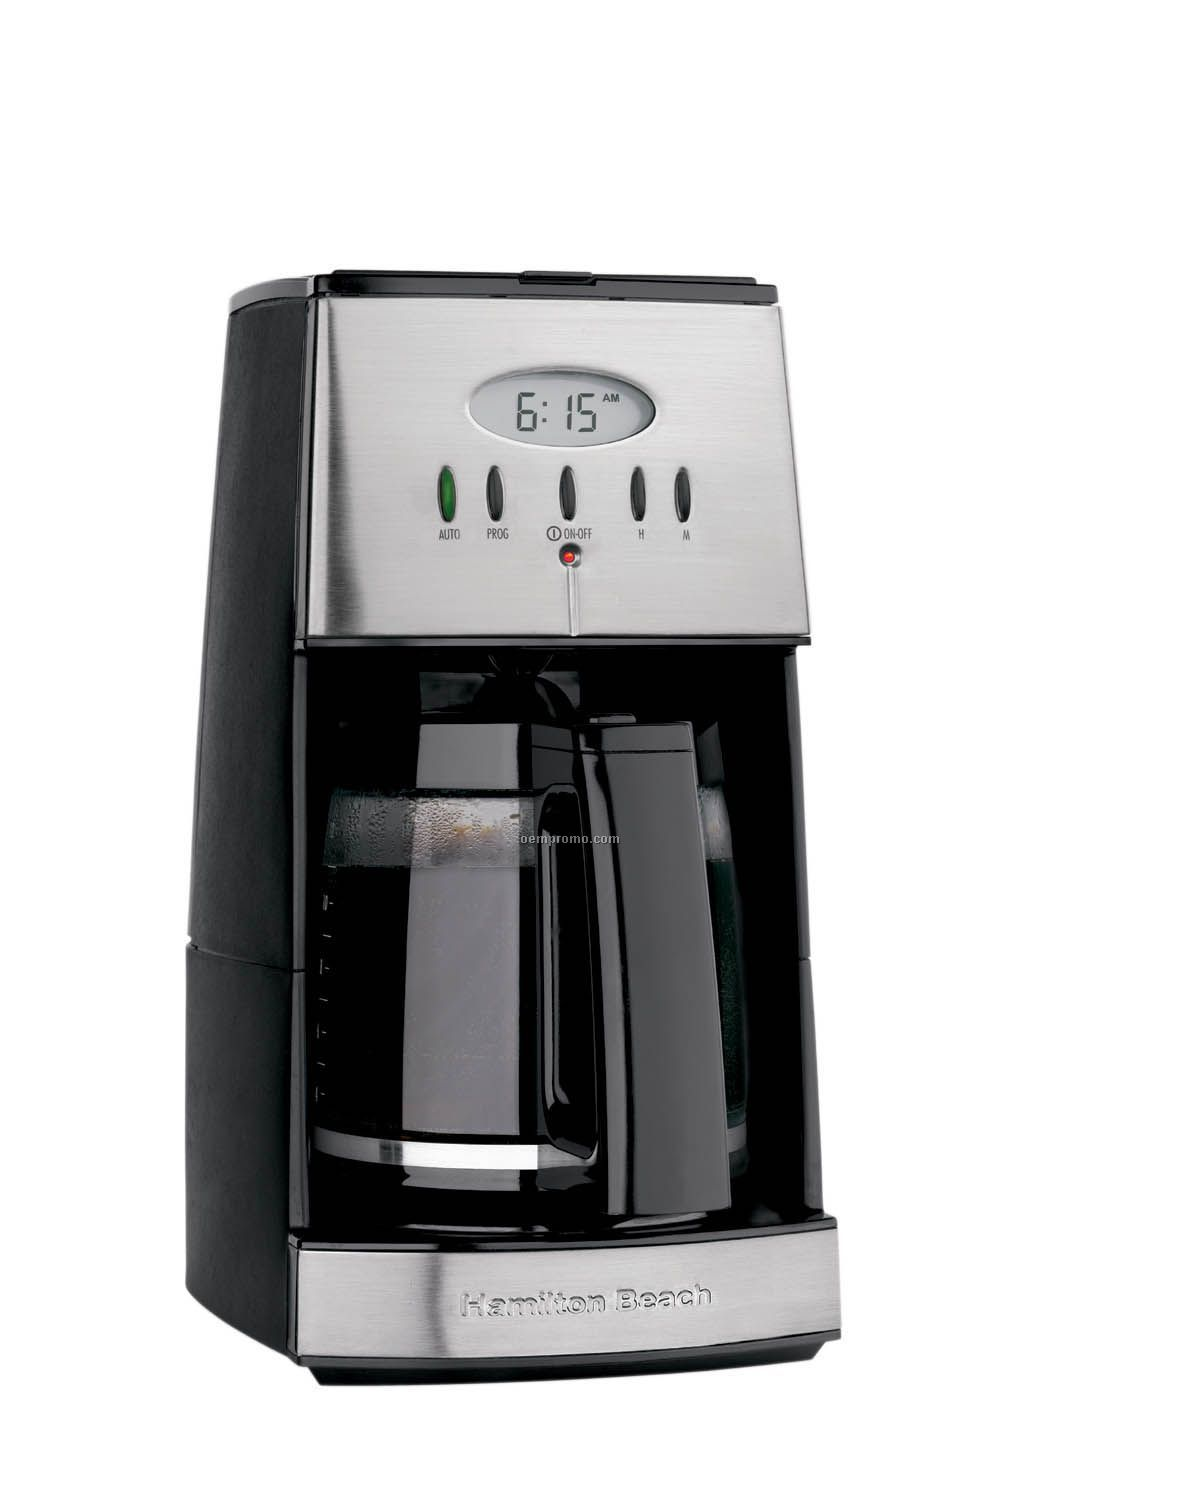 Hamilton Beach Ensemble 12 Cup Coffeemaker (Black)